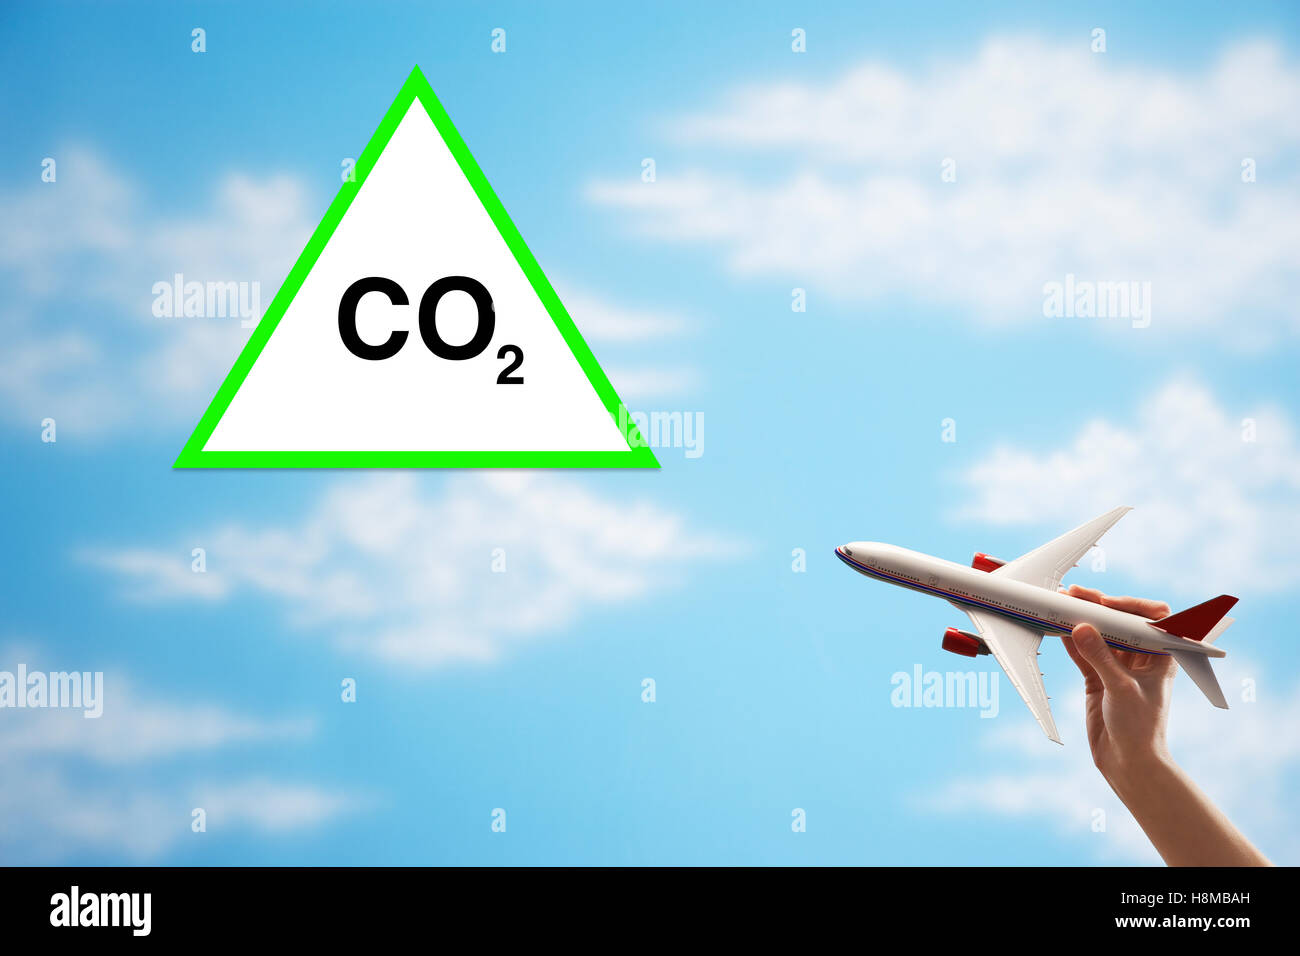 Closeup of woman's hand flying toy plane against cloudy sky with warning CO2 sign - Stock Image